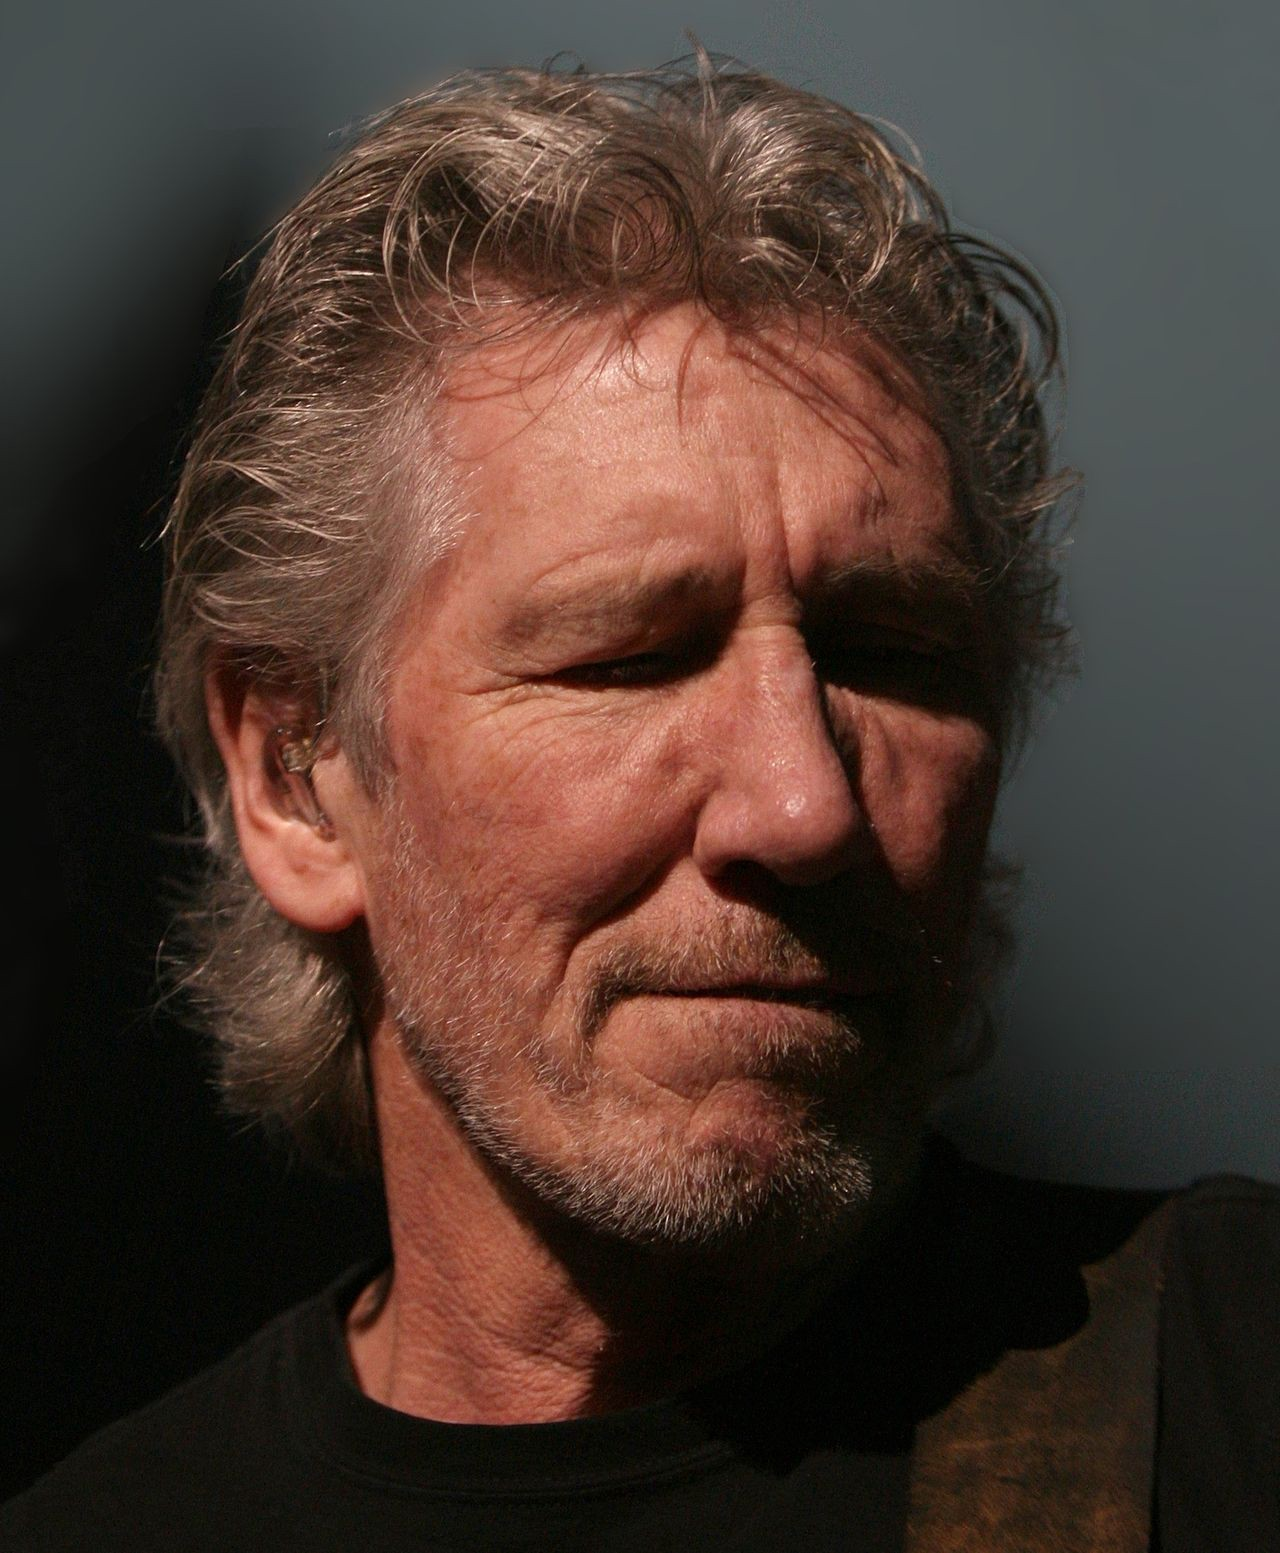 On 'Is This the Life We Really Want?' ROGER WATERS presents